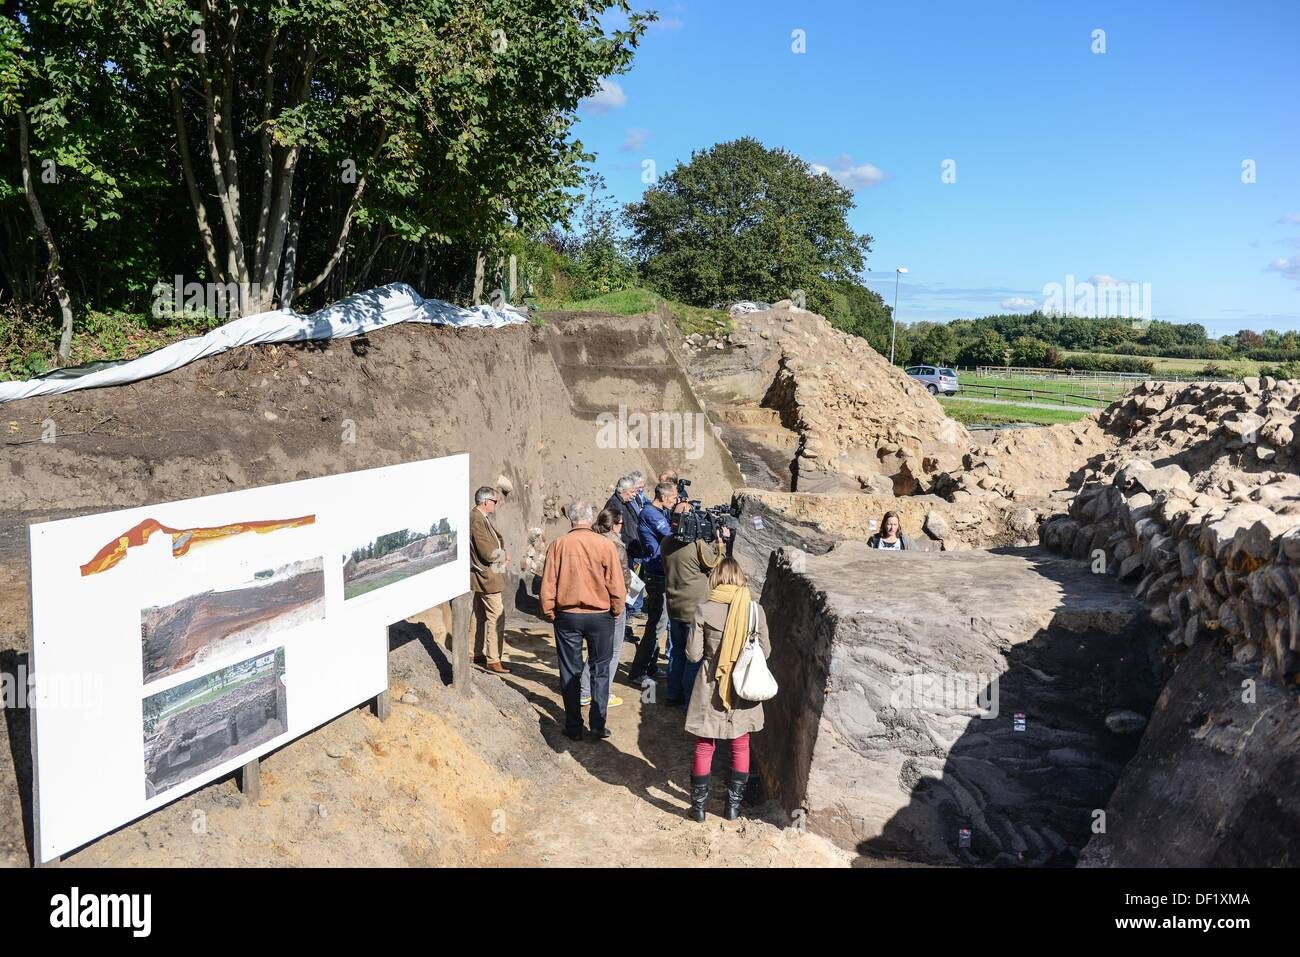 Members of the press inspect a segment of the defensive wall of the archaeological excavation site 'Danewerk' during a presentation in Dannewerk, Germany, 26 September 2013. The presentation showed for the first time to the public, a complete cross-section of the early mediaevil defensive wall including archaeological findings of one of northern Europe's largest archaeological heritage sites, which date back to 540 AD. PHOTO: BENJAMIN NOLTE - Stock Image